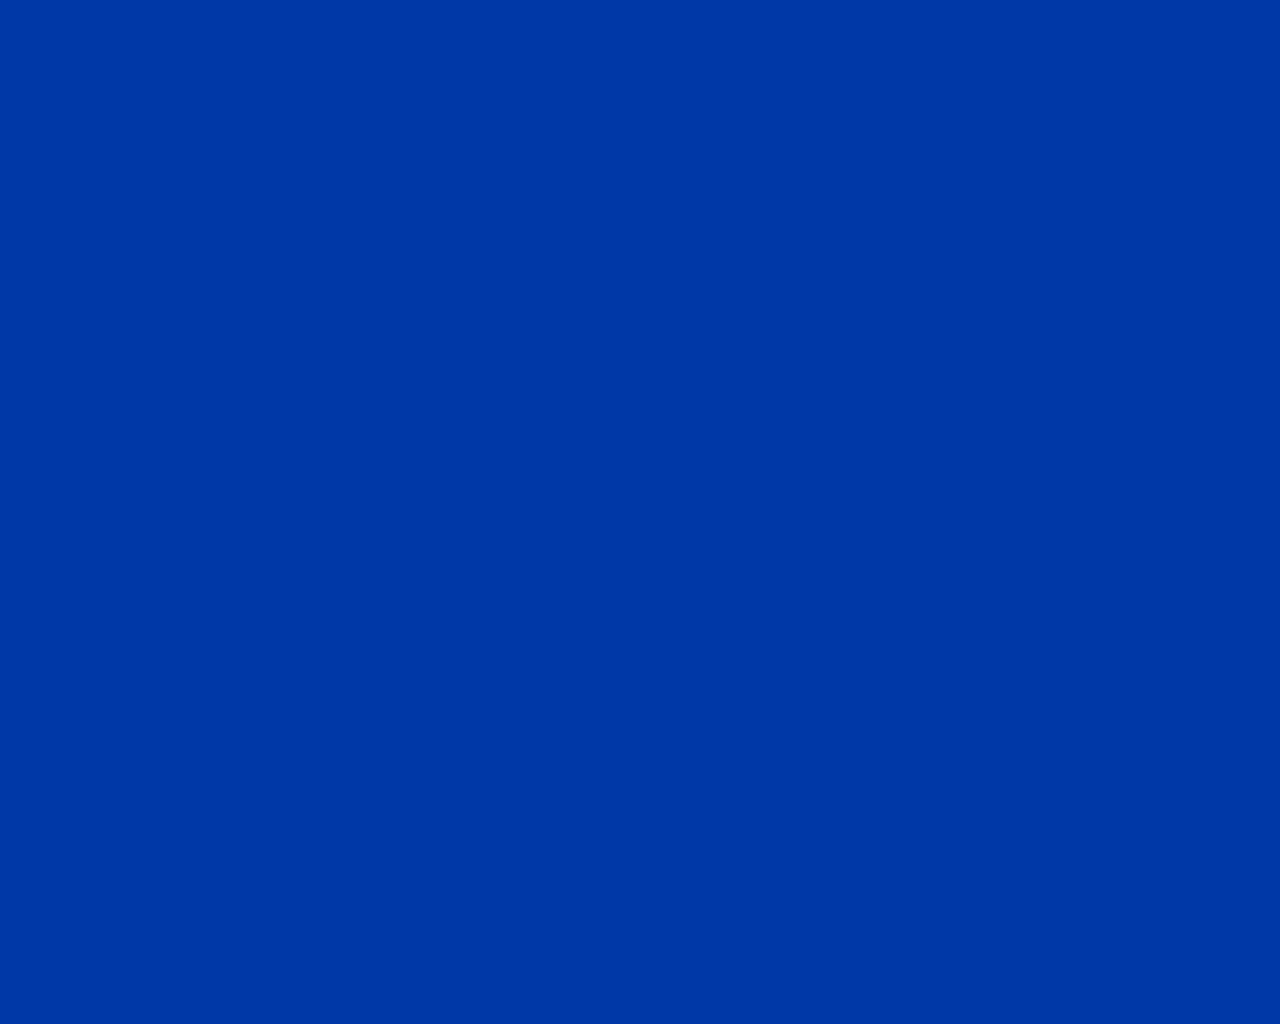 1280x1024 Royal Azure Solid Color Background